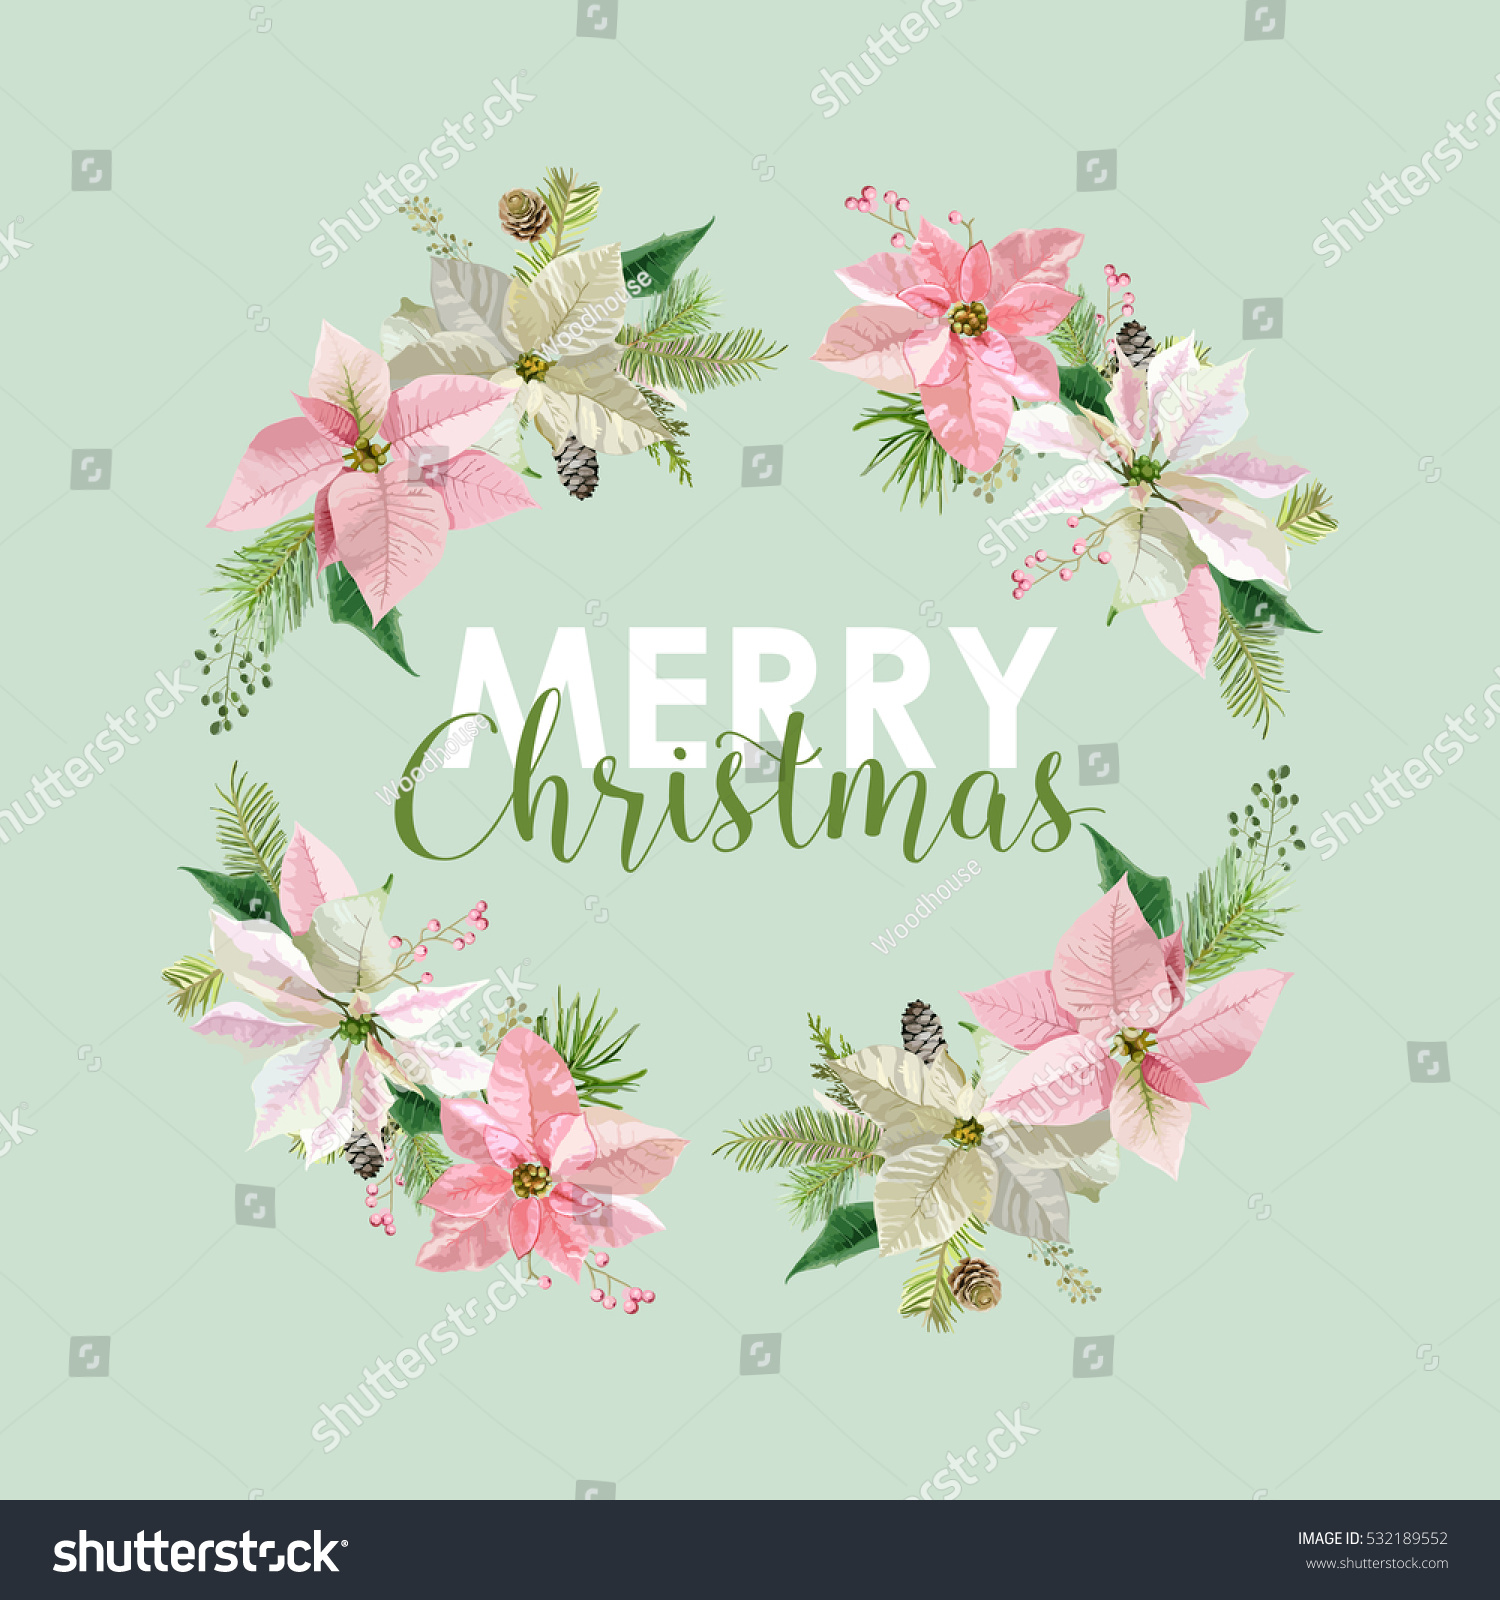 New year christmas card vintage flowers stock vector 532189552 new year and christmas card vintage flowers poinsettia pink background in vector kristyandbryce Image collections